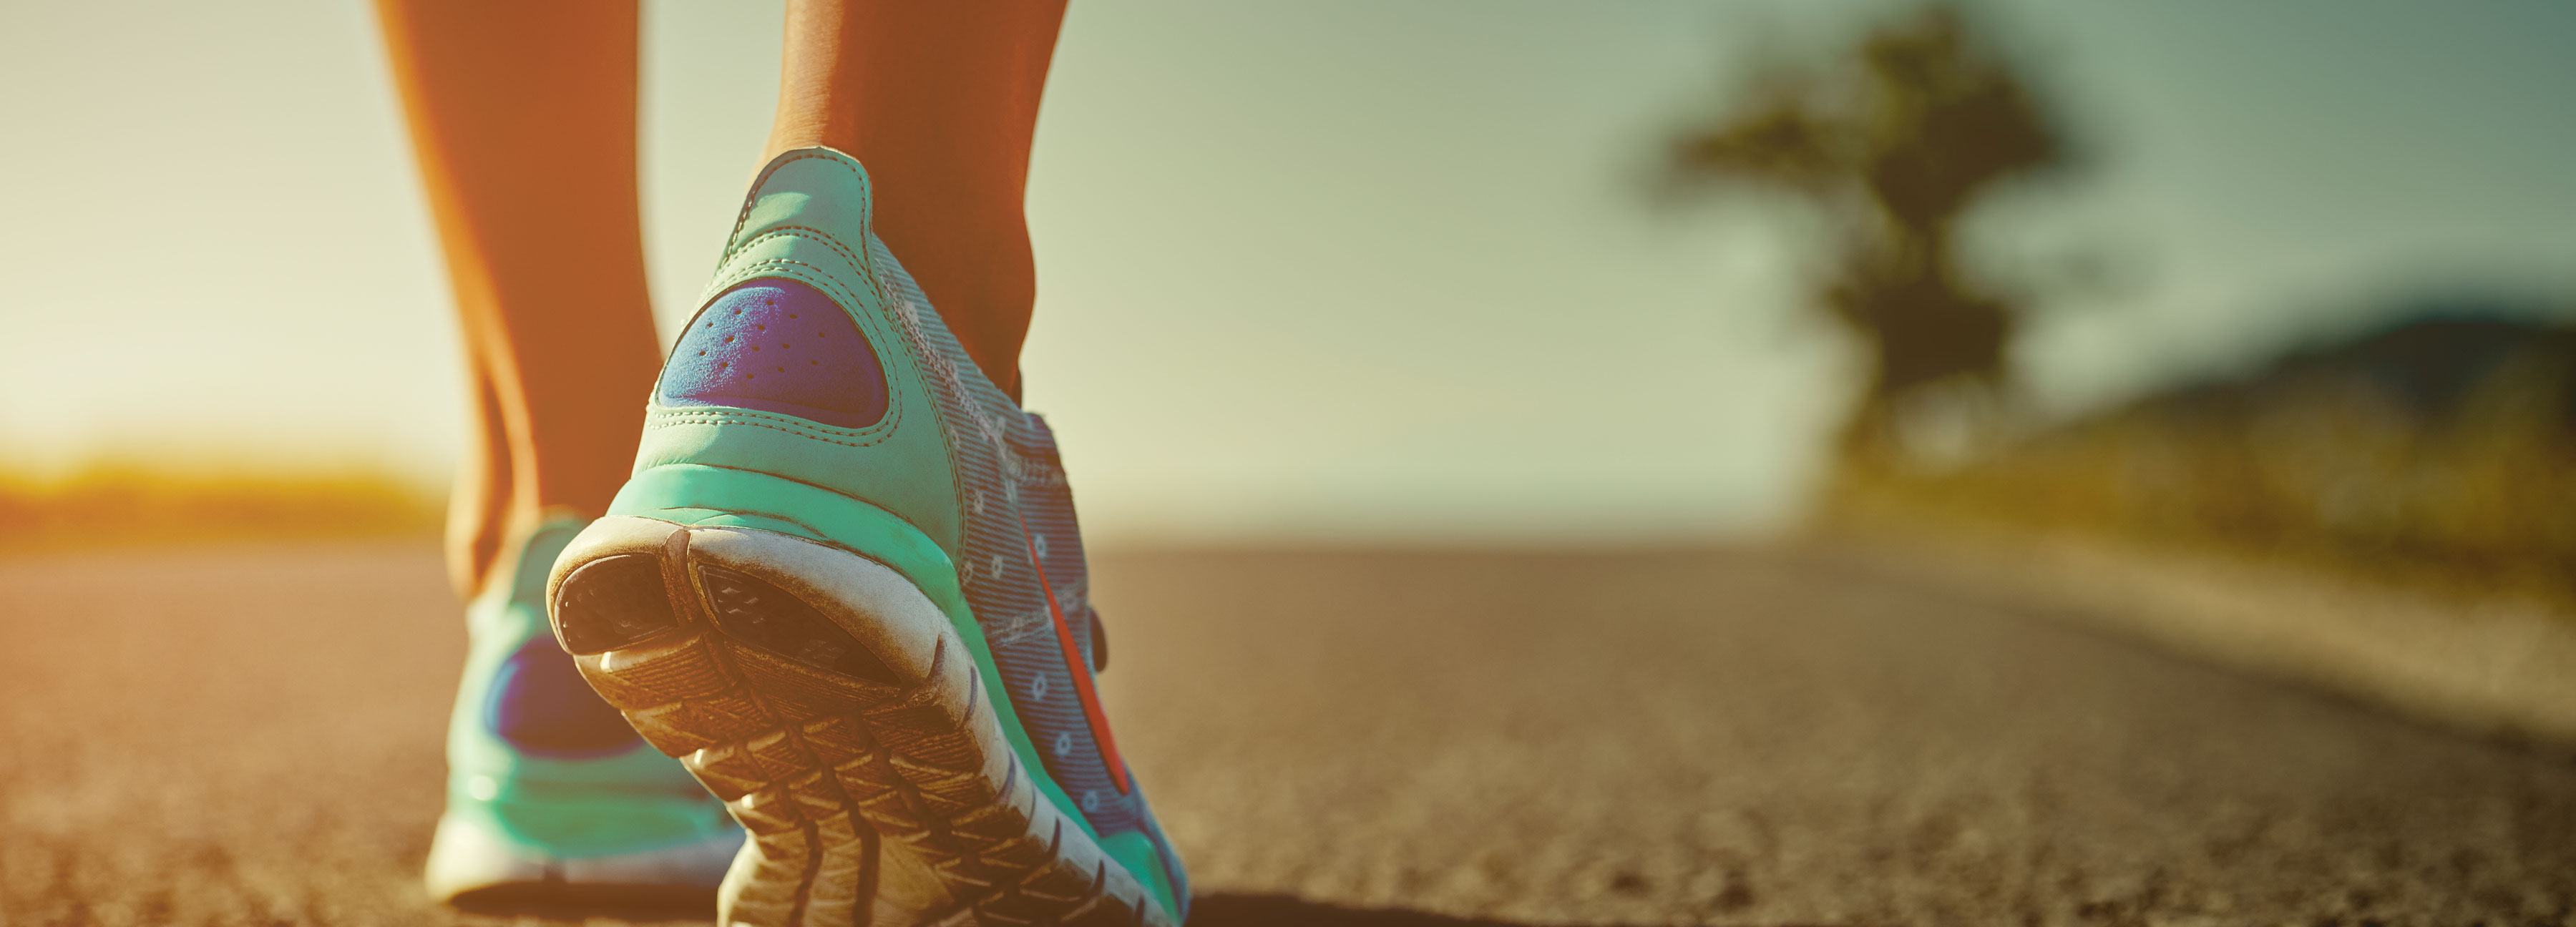 Close up of a woman in running sneakers on path